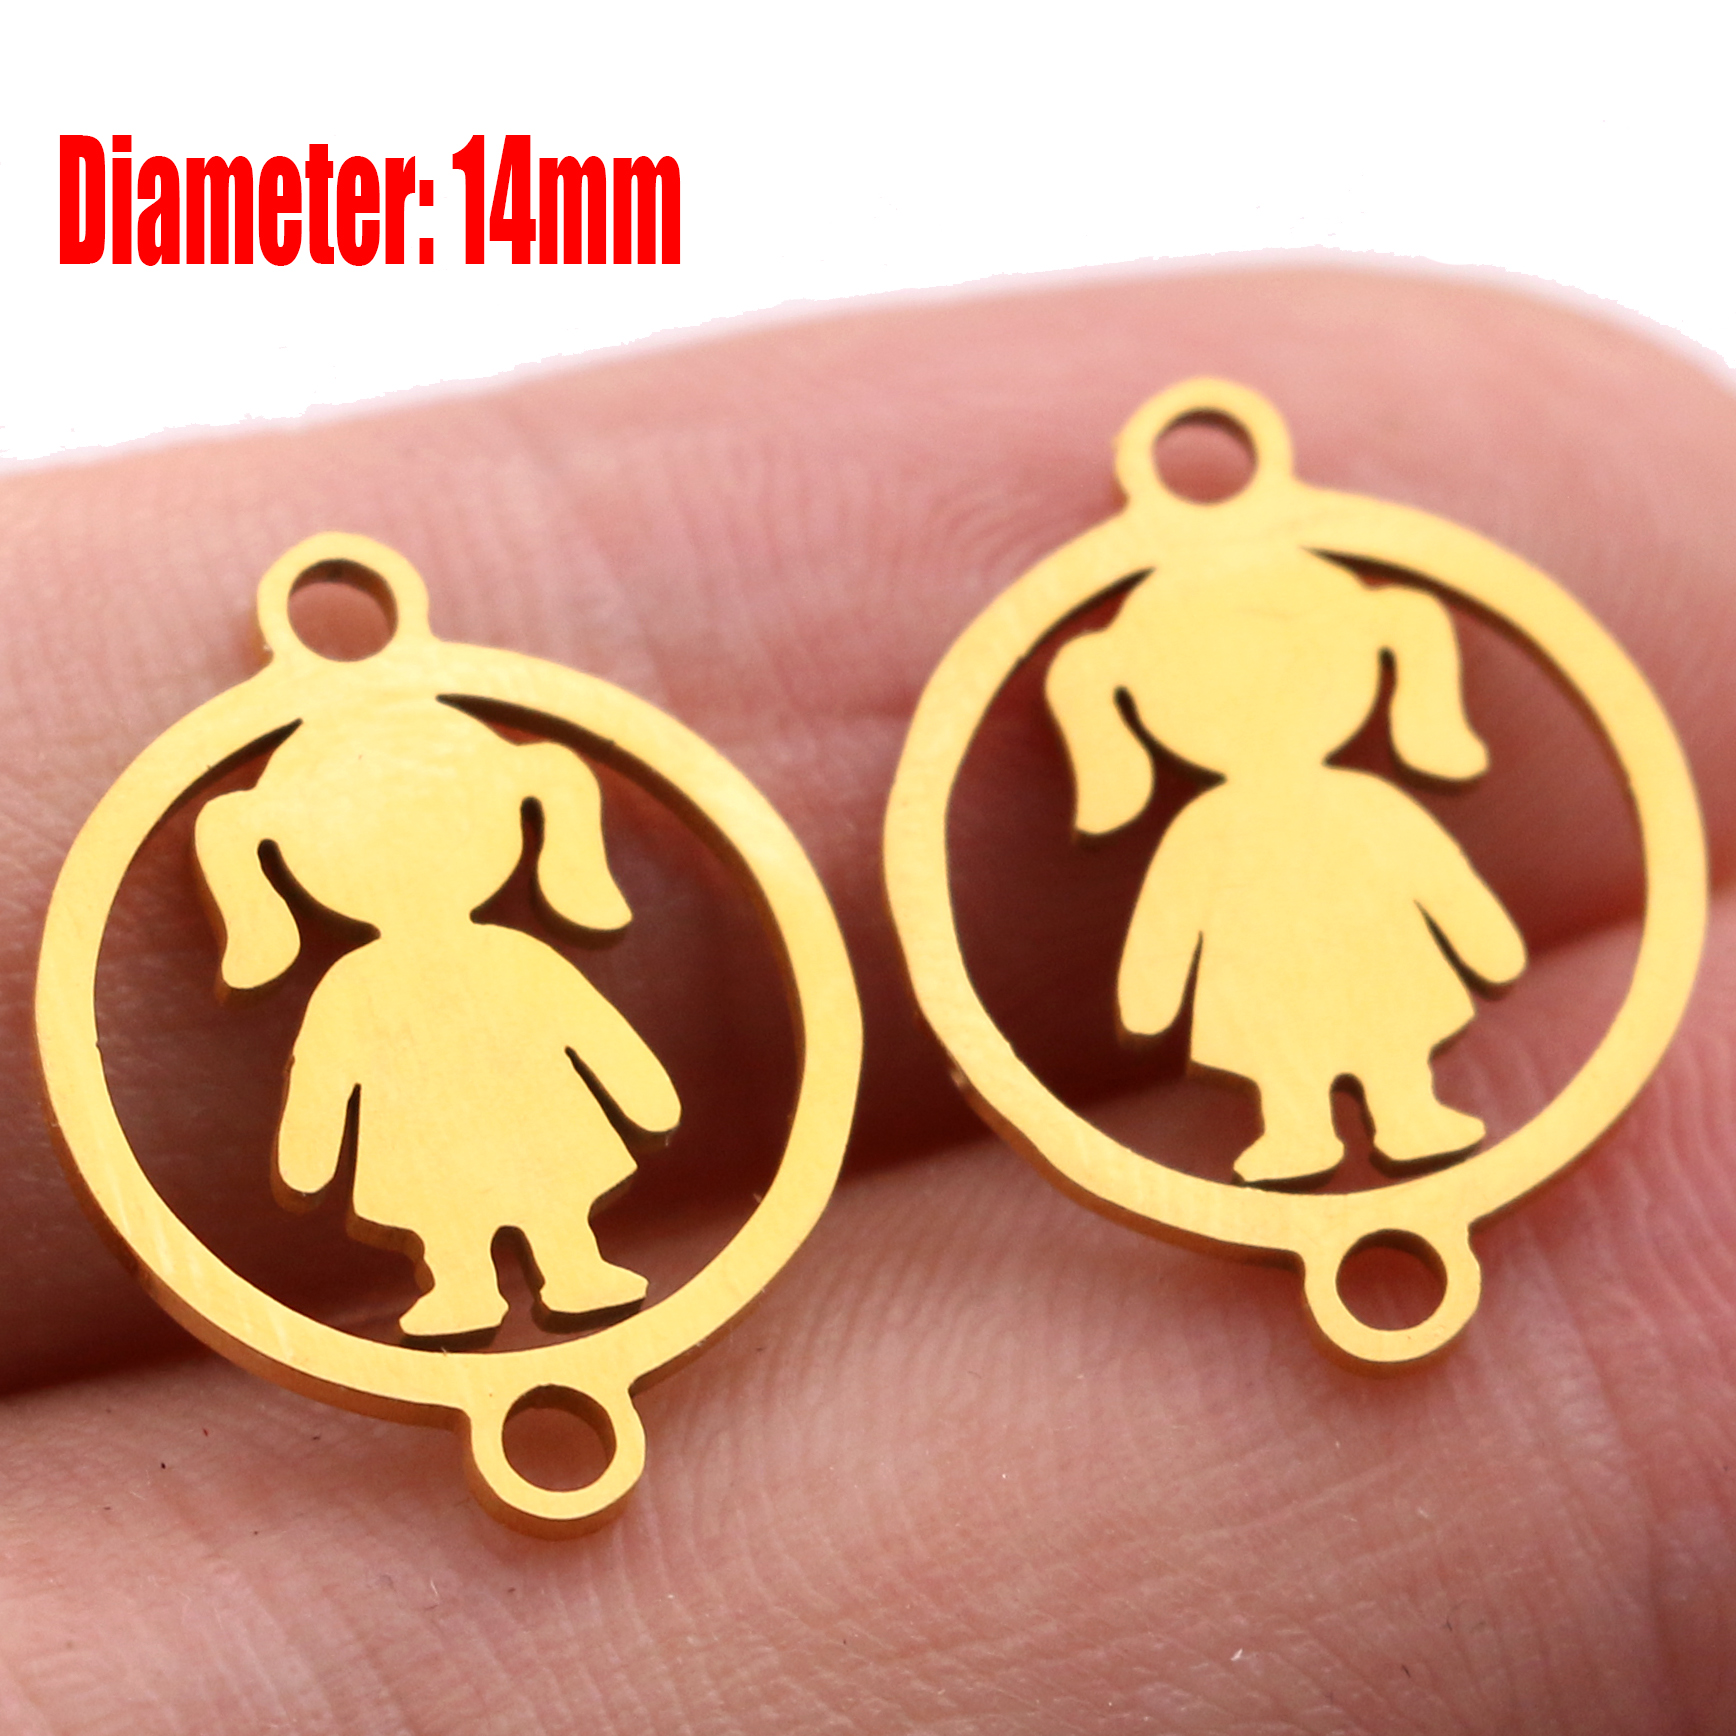 5pcs Family Chain Stainless Steel Pendant Necklace Parents and Children Necklaces Gold/steel Jewelry Gift for Mom Dad New Twice - Цвет: Gold 13